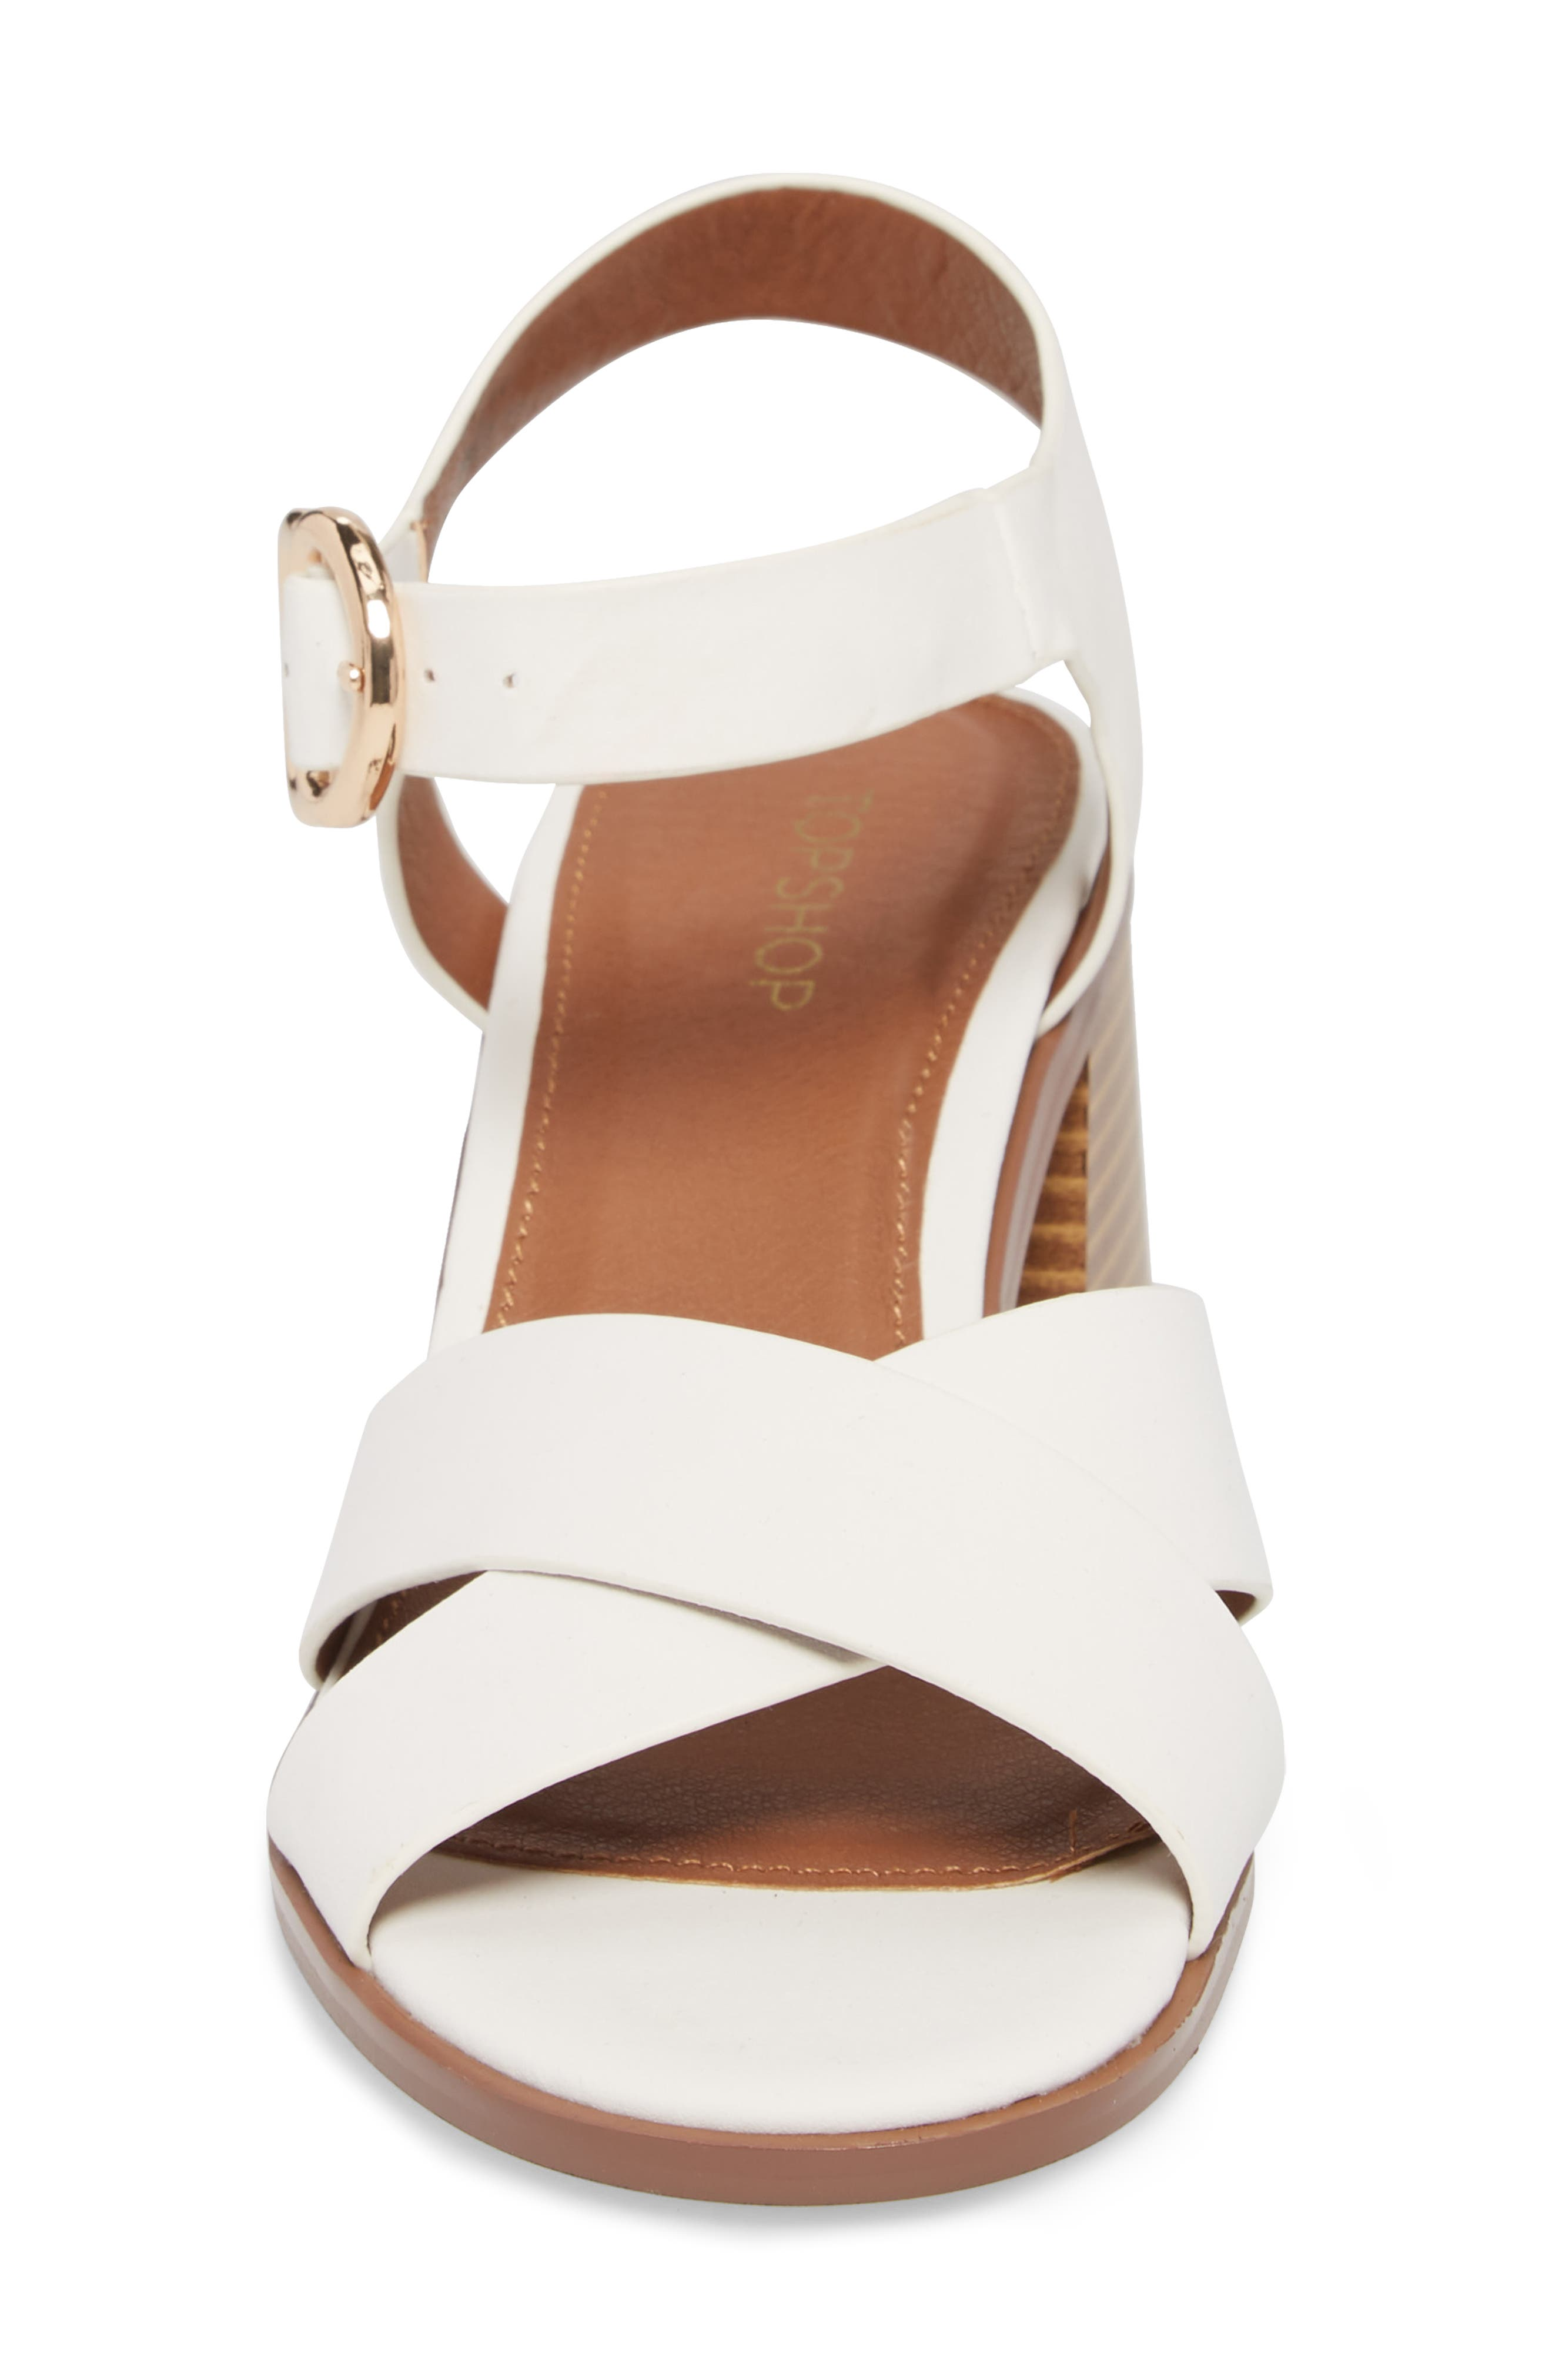 Dee Dee Block Heel Sandal,                             Alternate thumbnail 4, color,                             White Multi